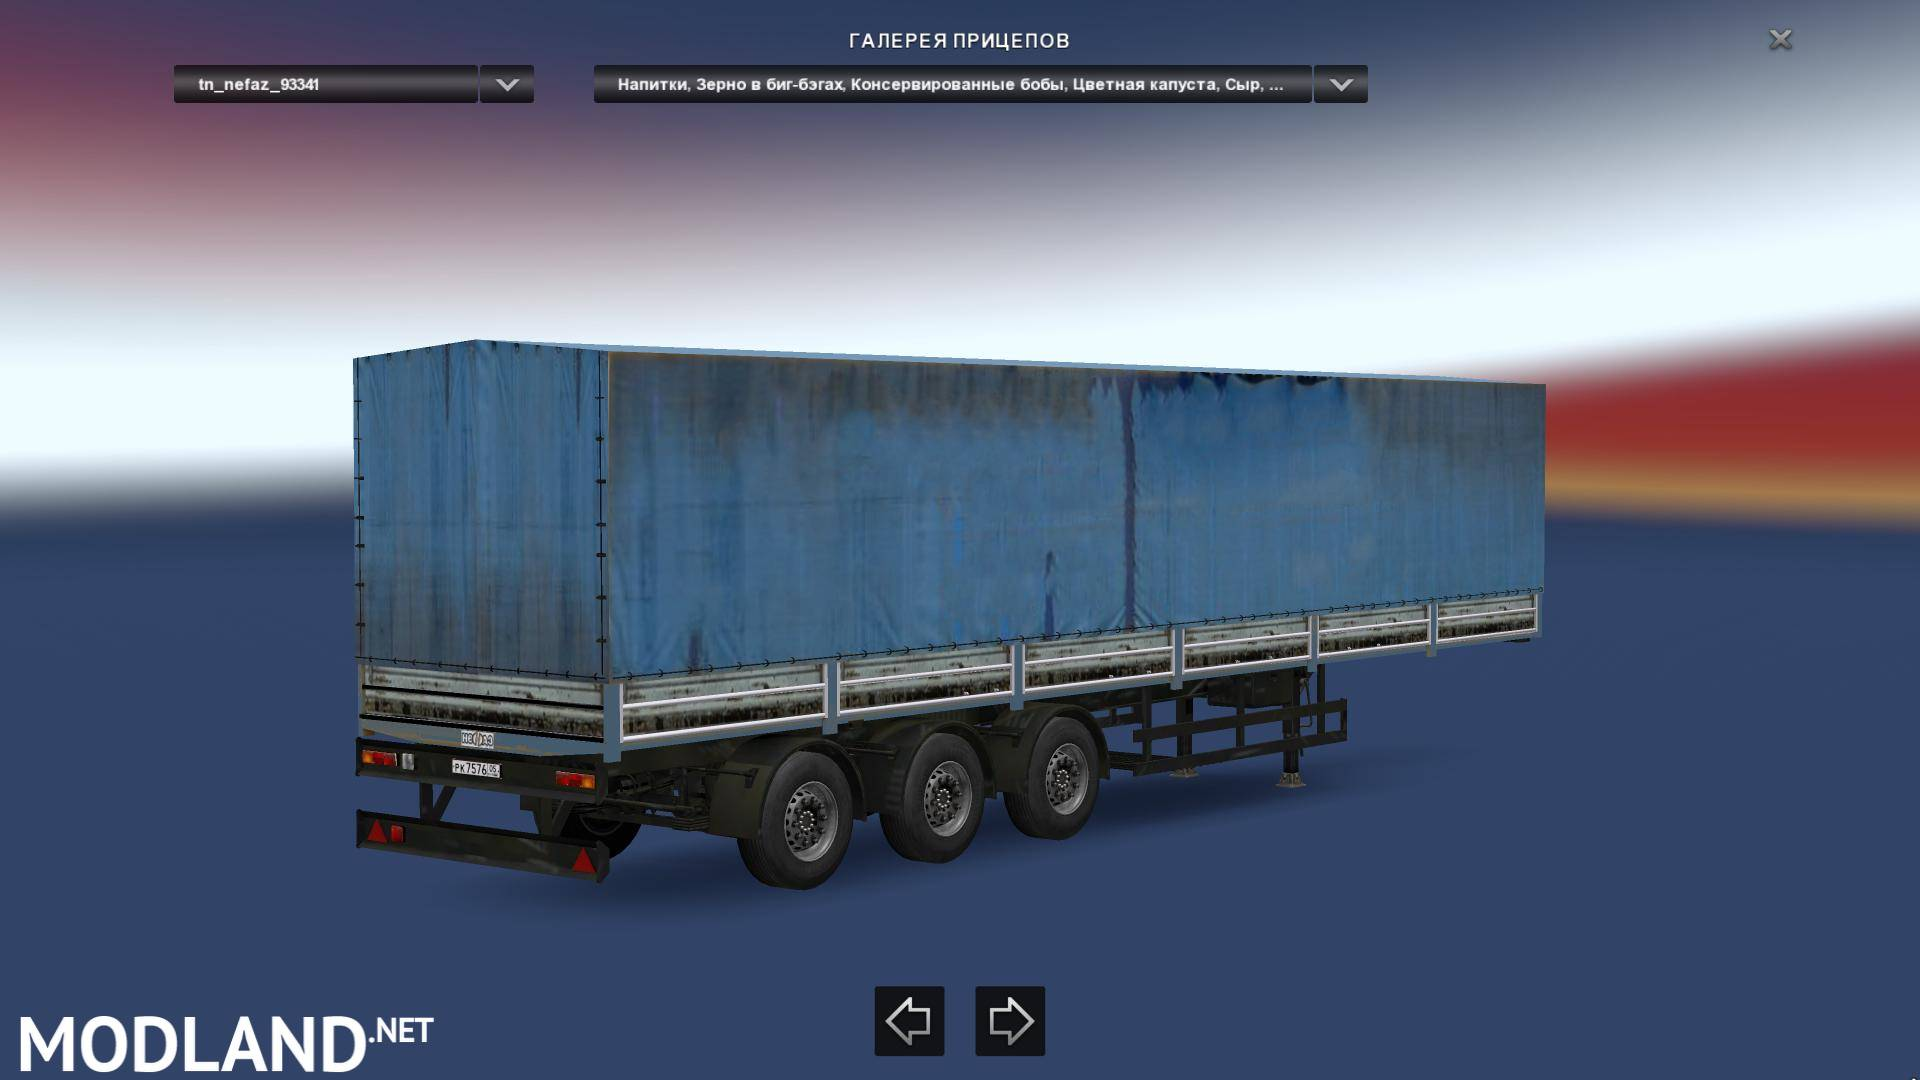 Dirty Rusty Trailer Nefaz 93341 1 28 1 30 Mod For Ets 2